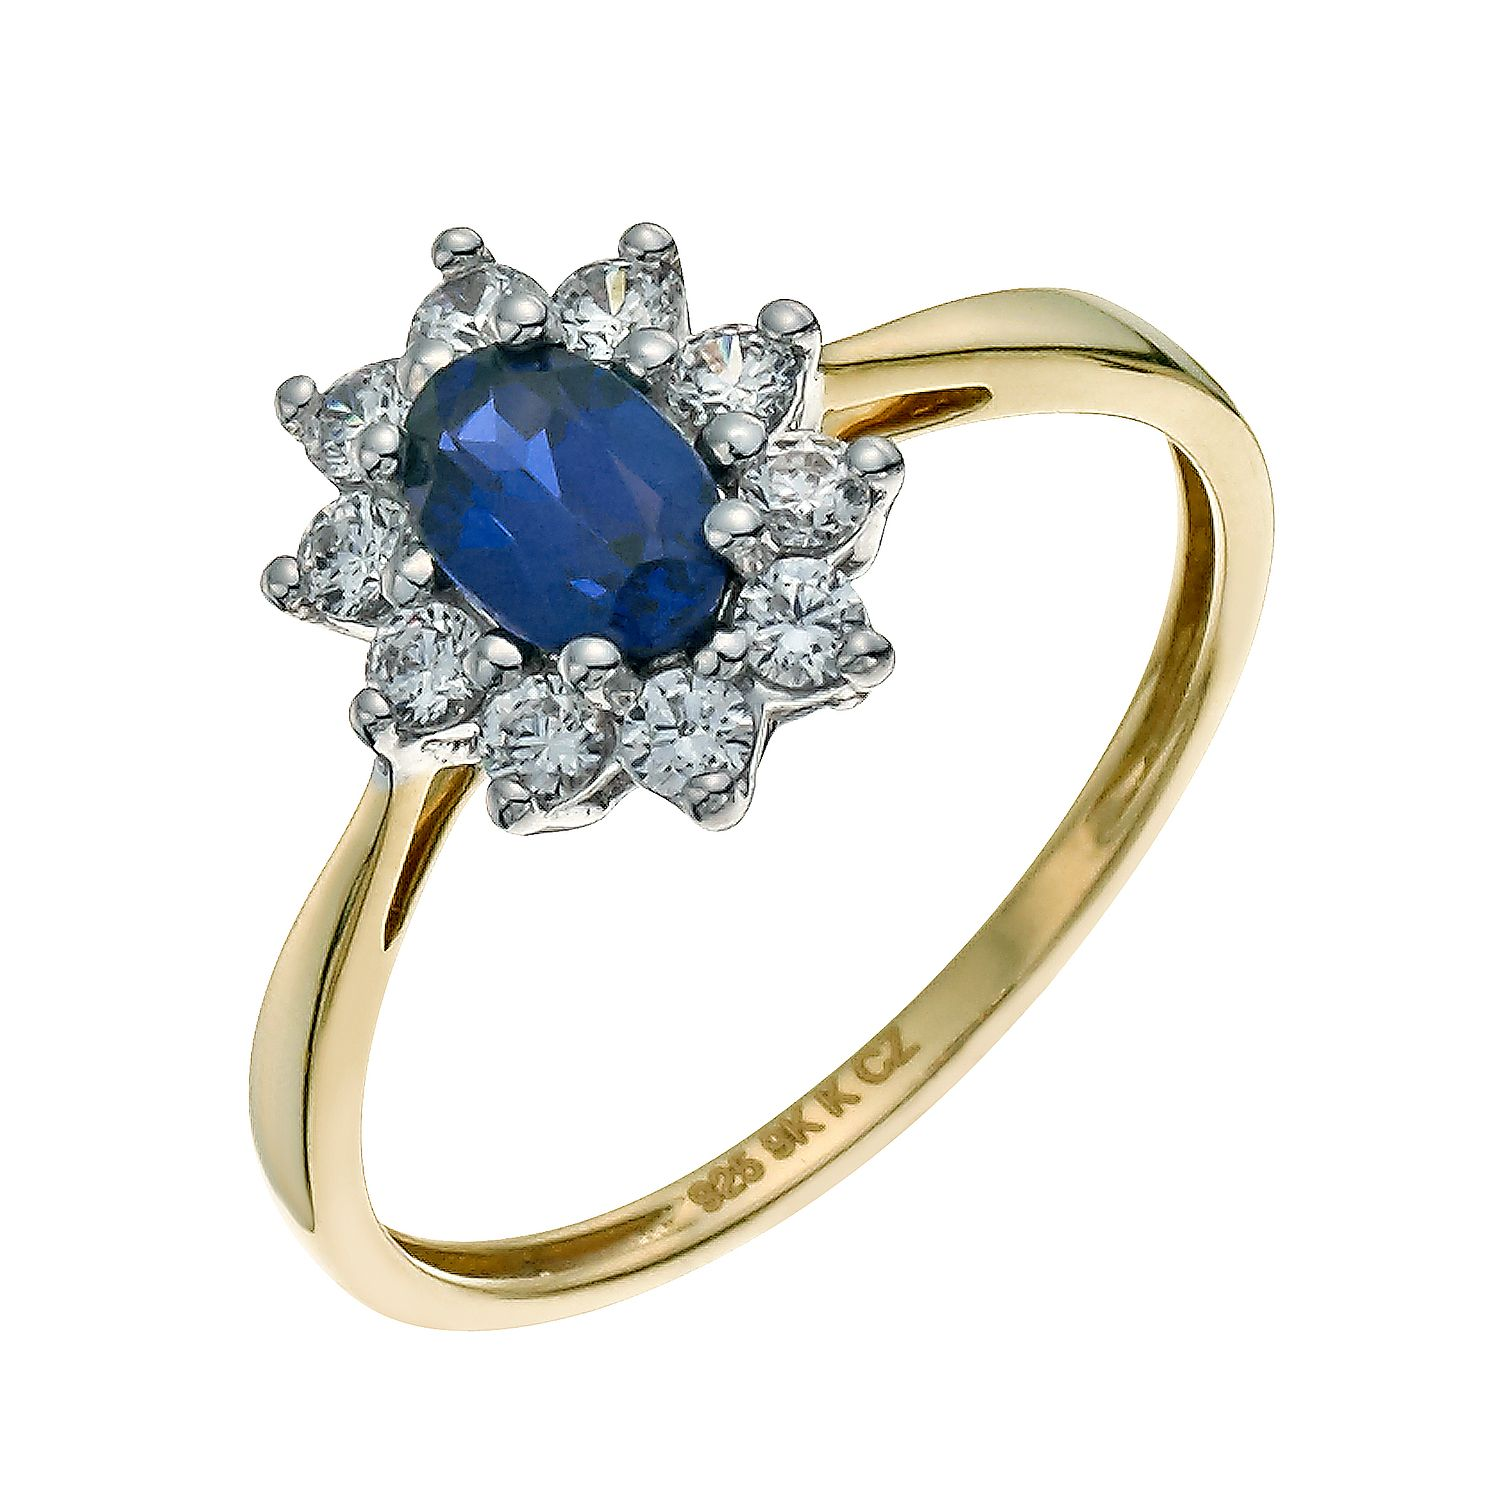 engagement set product and exeter rings jewellery ring sapphire jewelers bezel diamond half